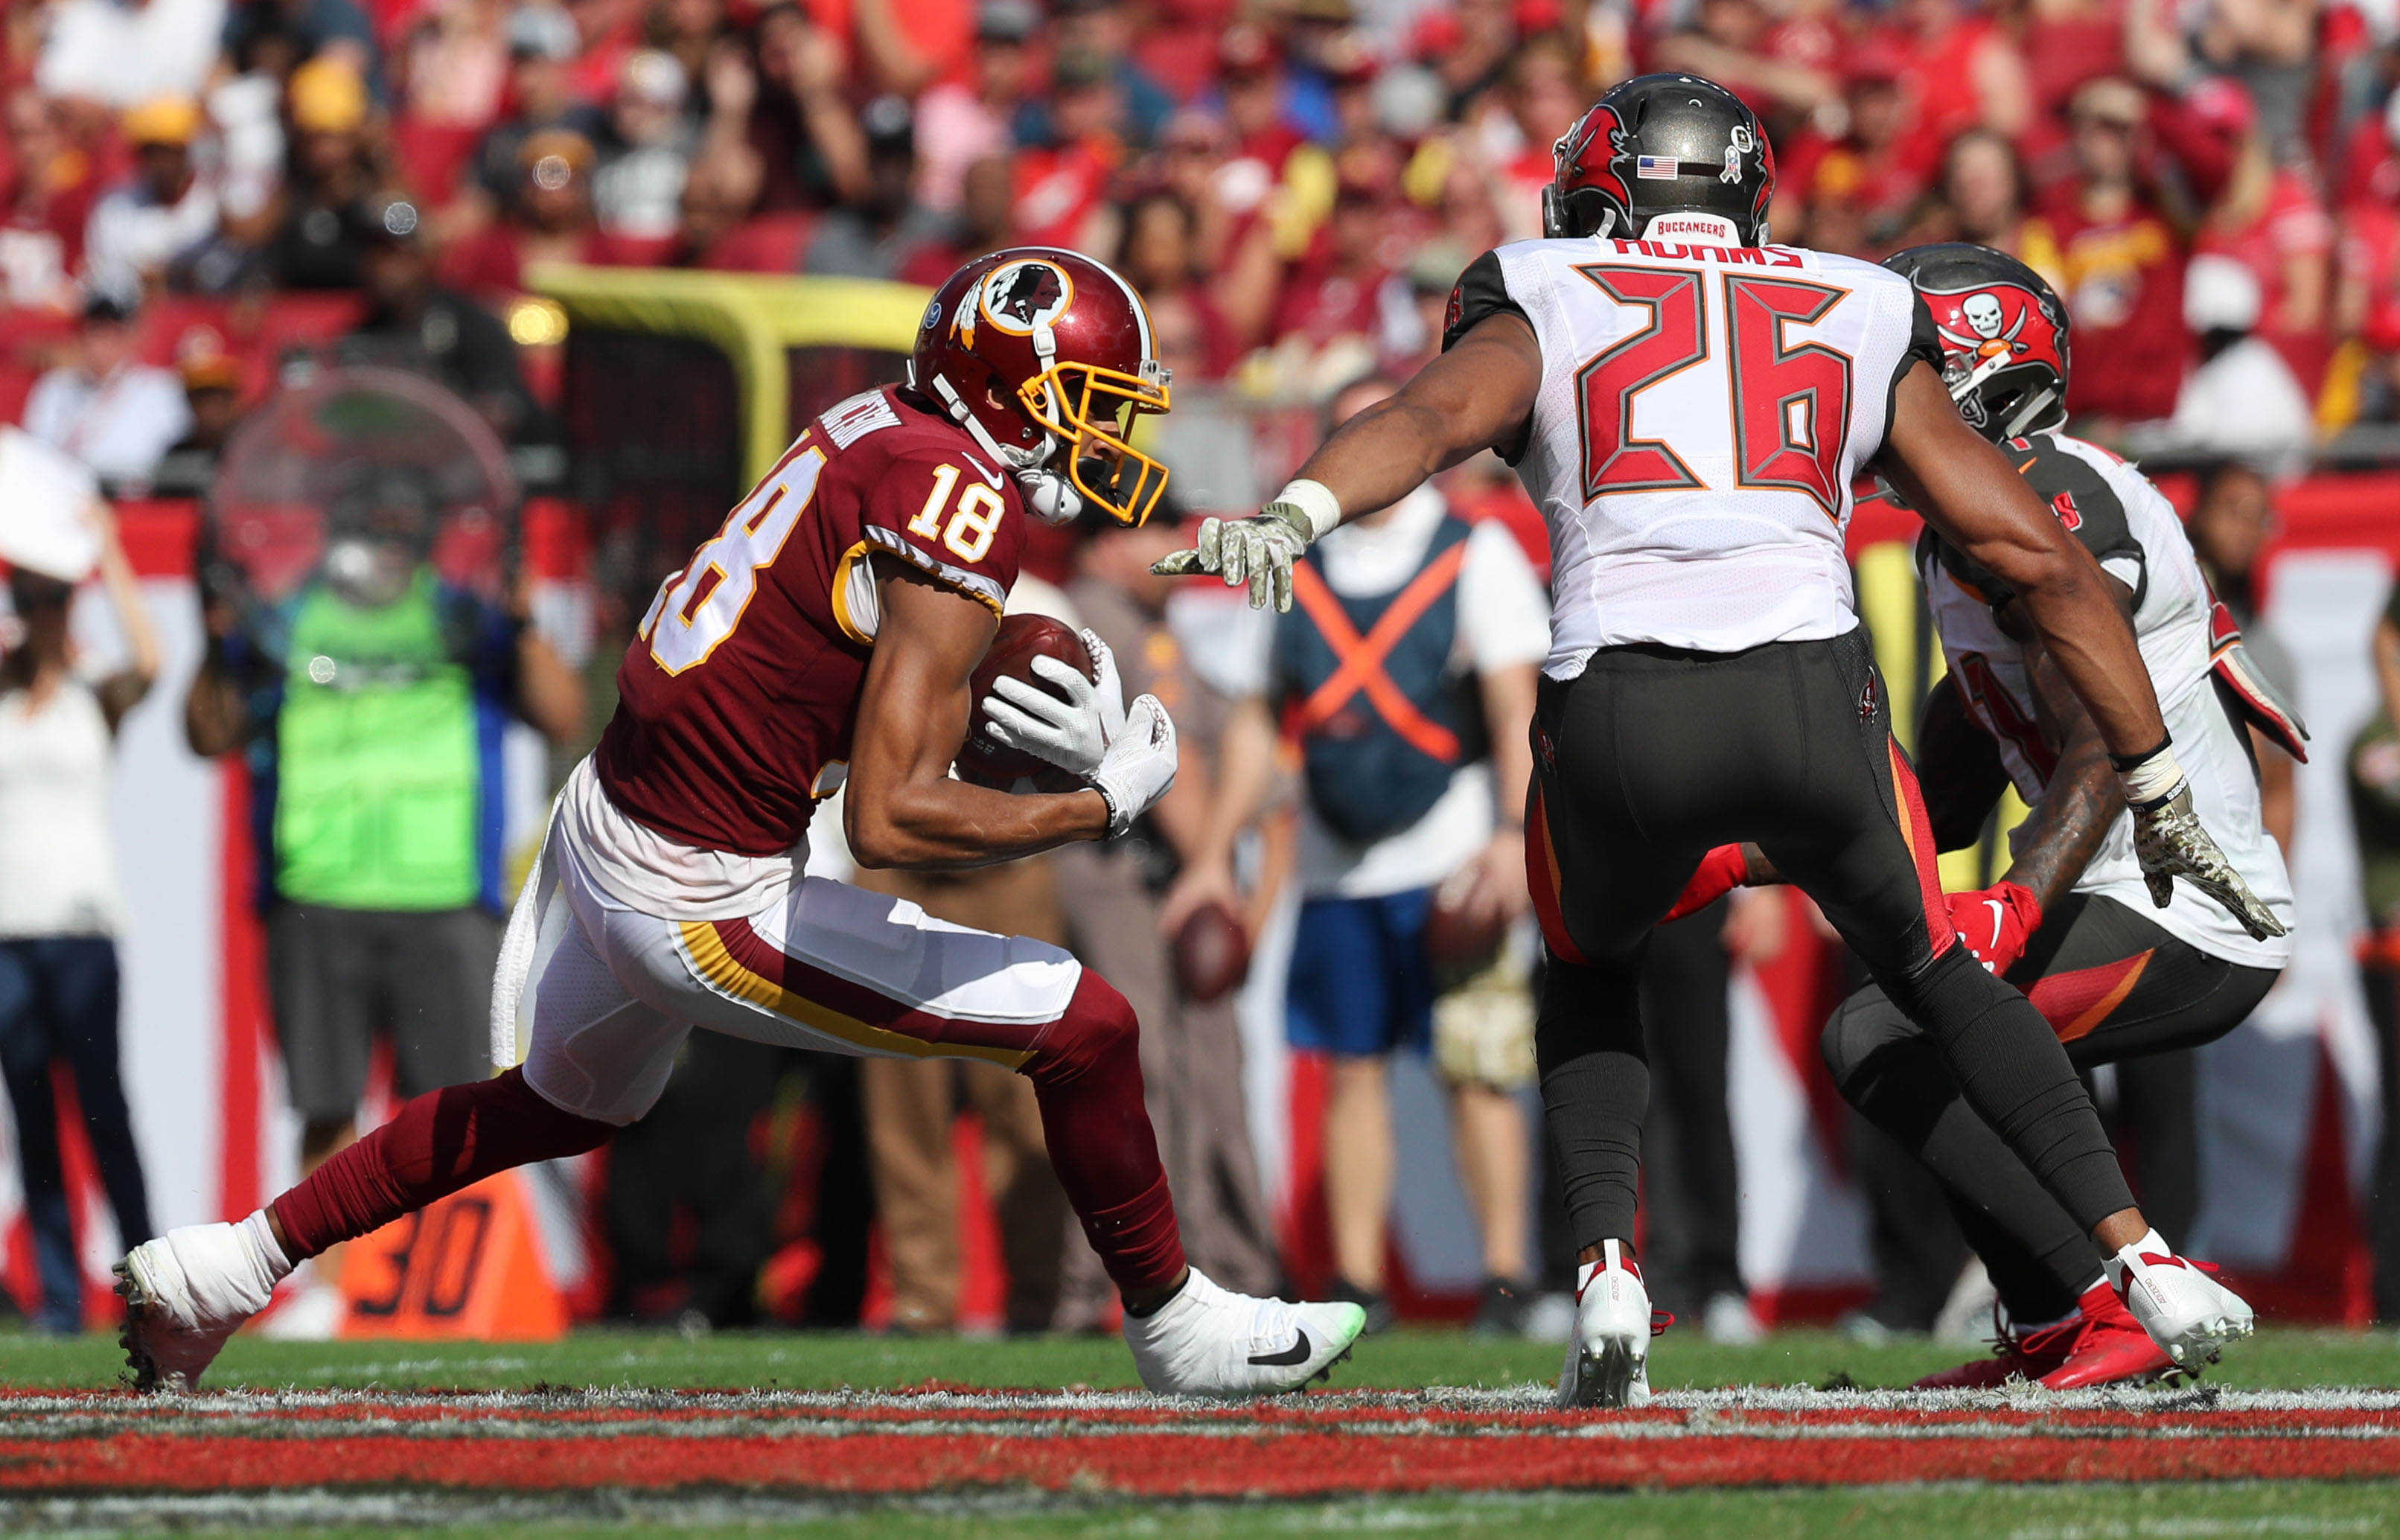 Banged-up Redskins find beauty in ugly road win in Tampa